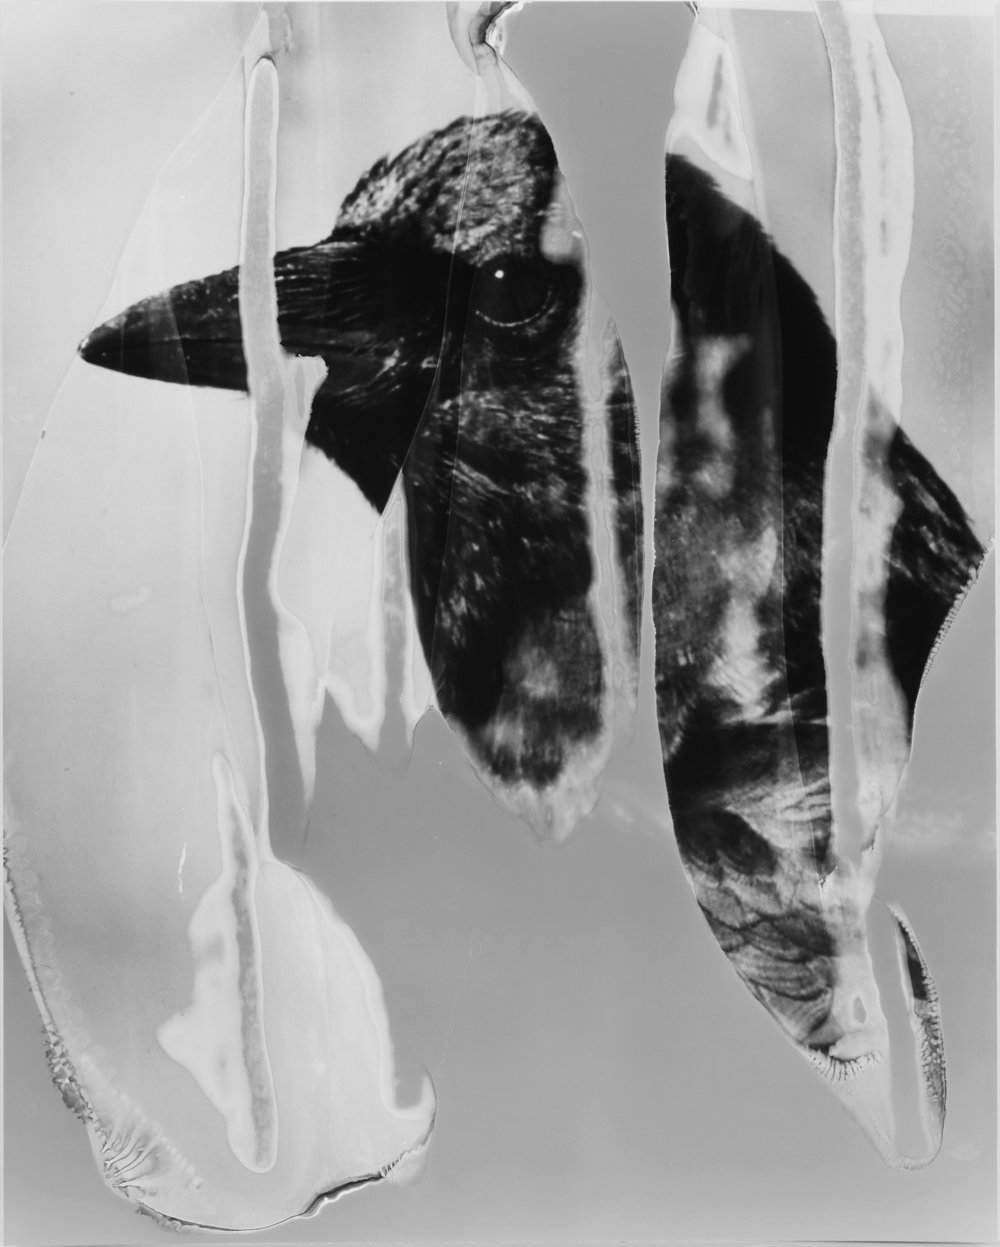 Image © Eileen Quinlan. The Crow, 2016. Gelatin silver print, 25 x 20 inches (63.5 x 50.8 cm). Courtesy of Miguel Abreu Gallery and the artist.